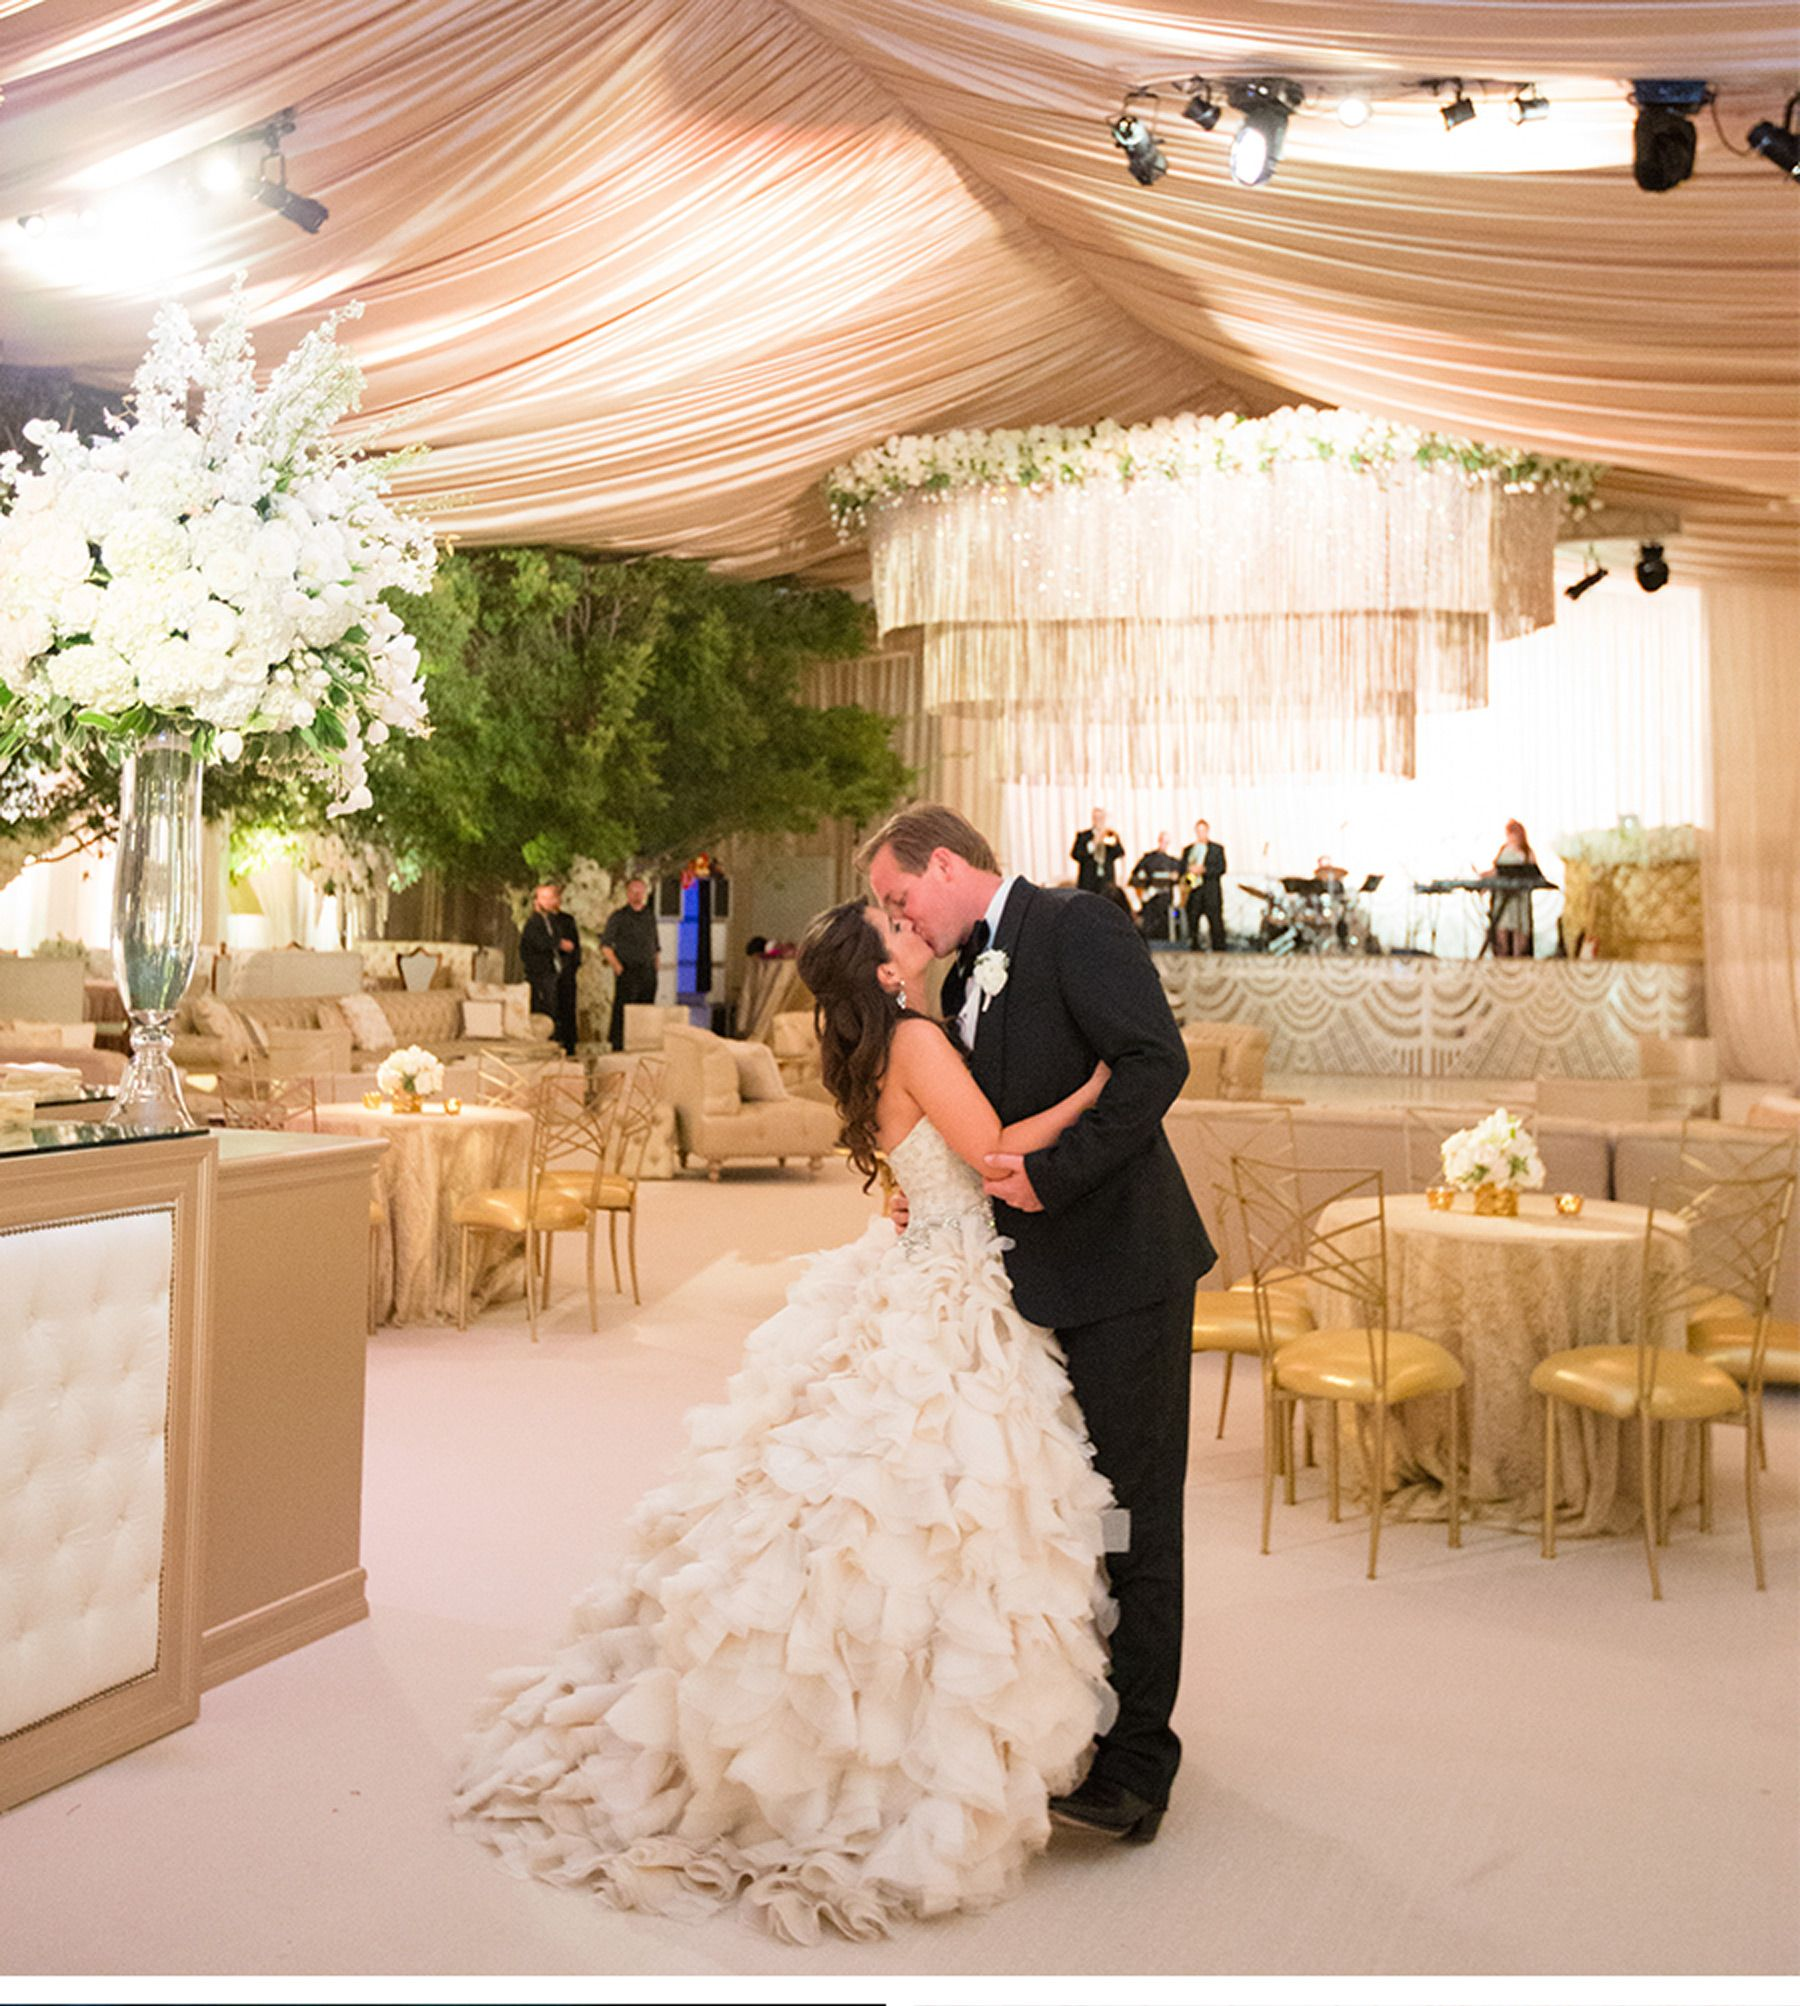 Our muse glamorous wedding in texas cameron and winston